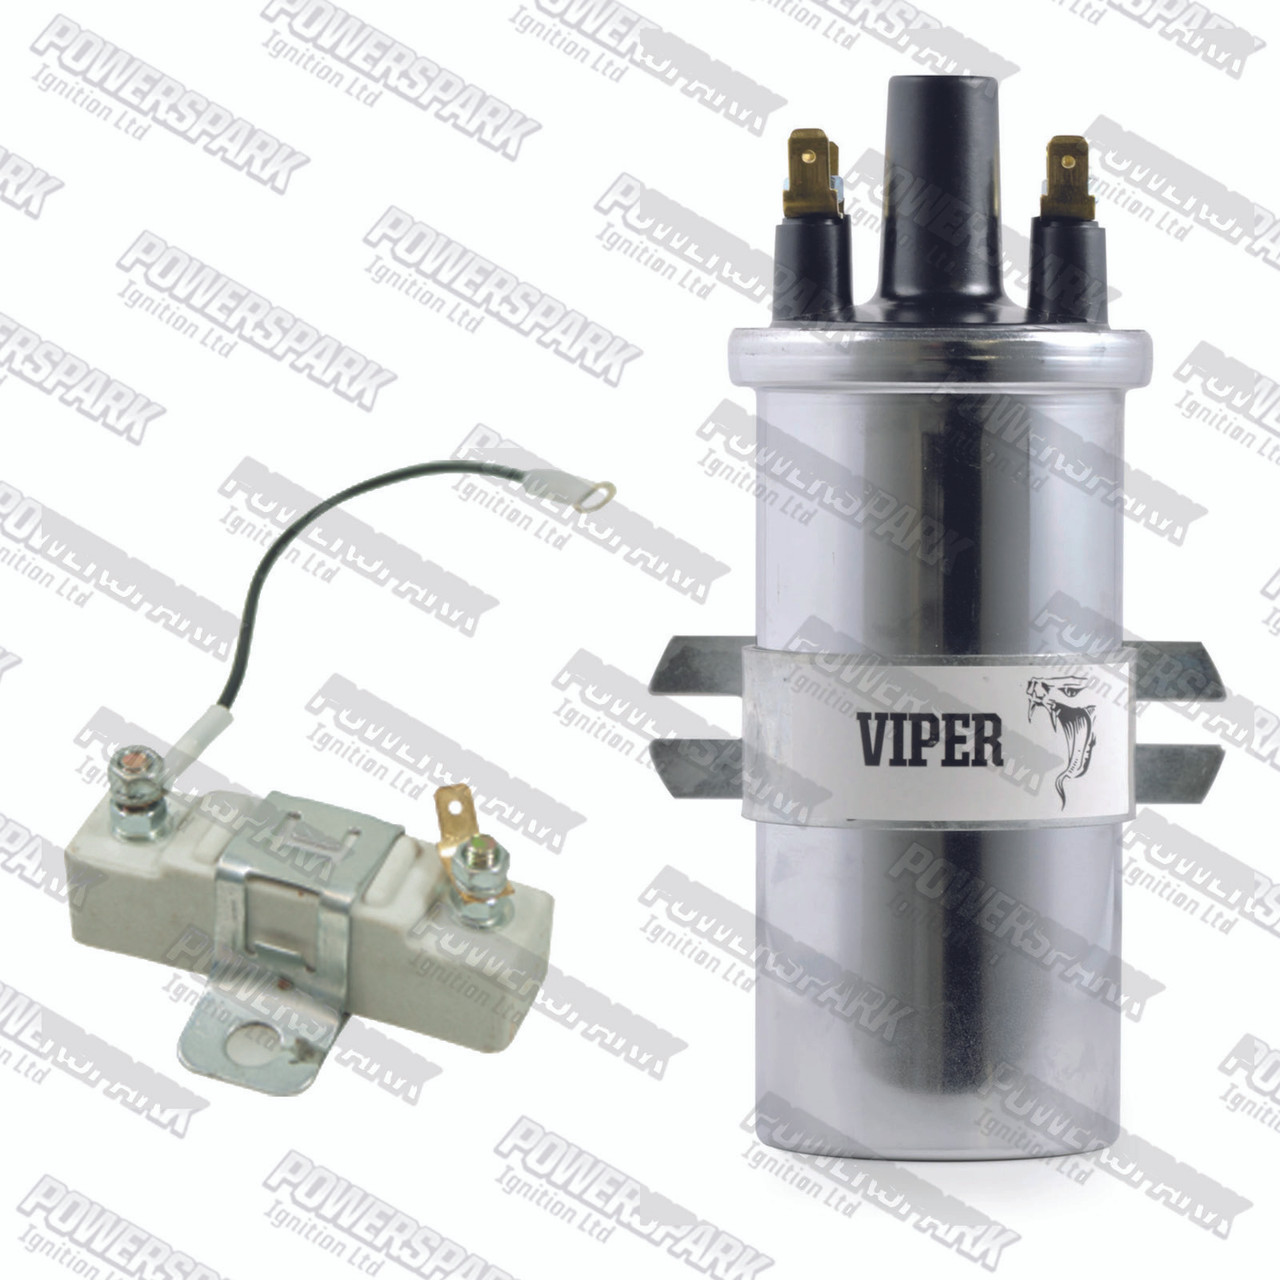 Viper Dry Ignition Coil Sports Ballast replaces DLB110 DLB102 (VC110 & 08-001)